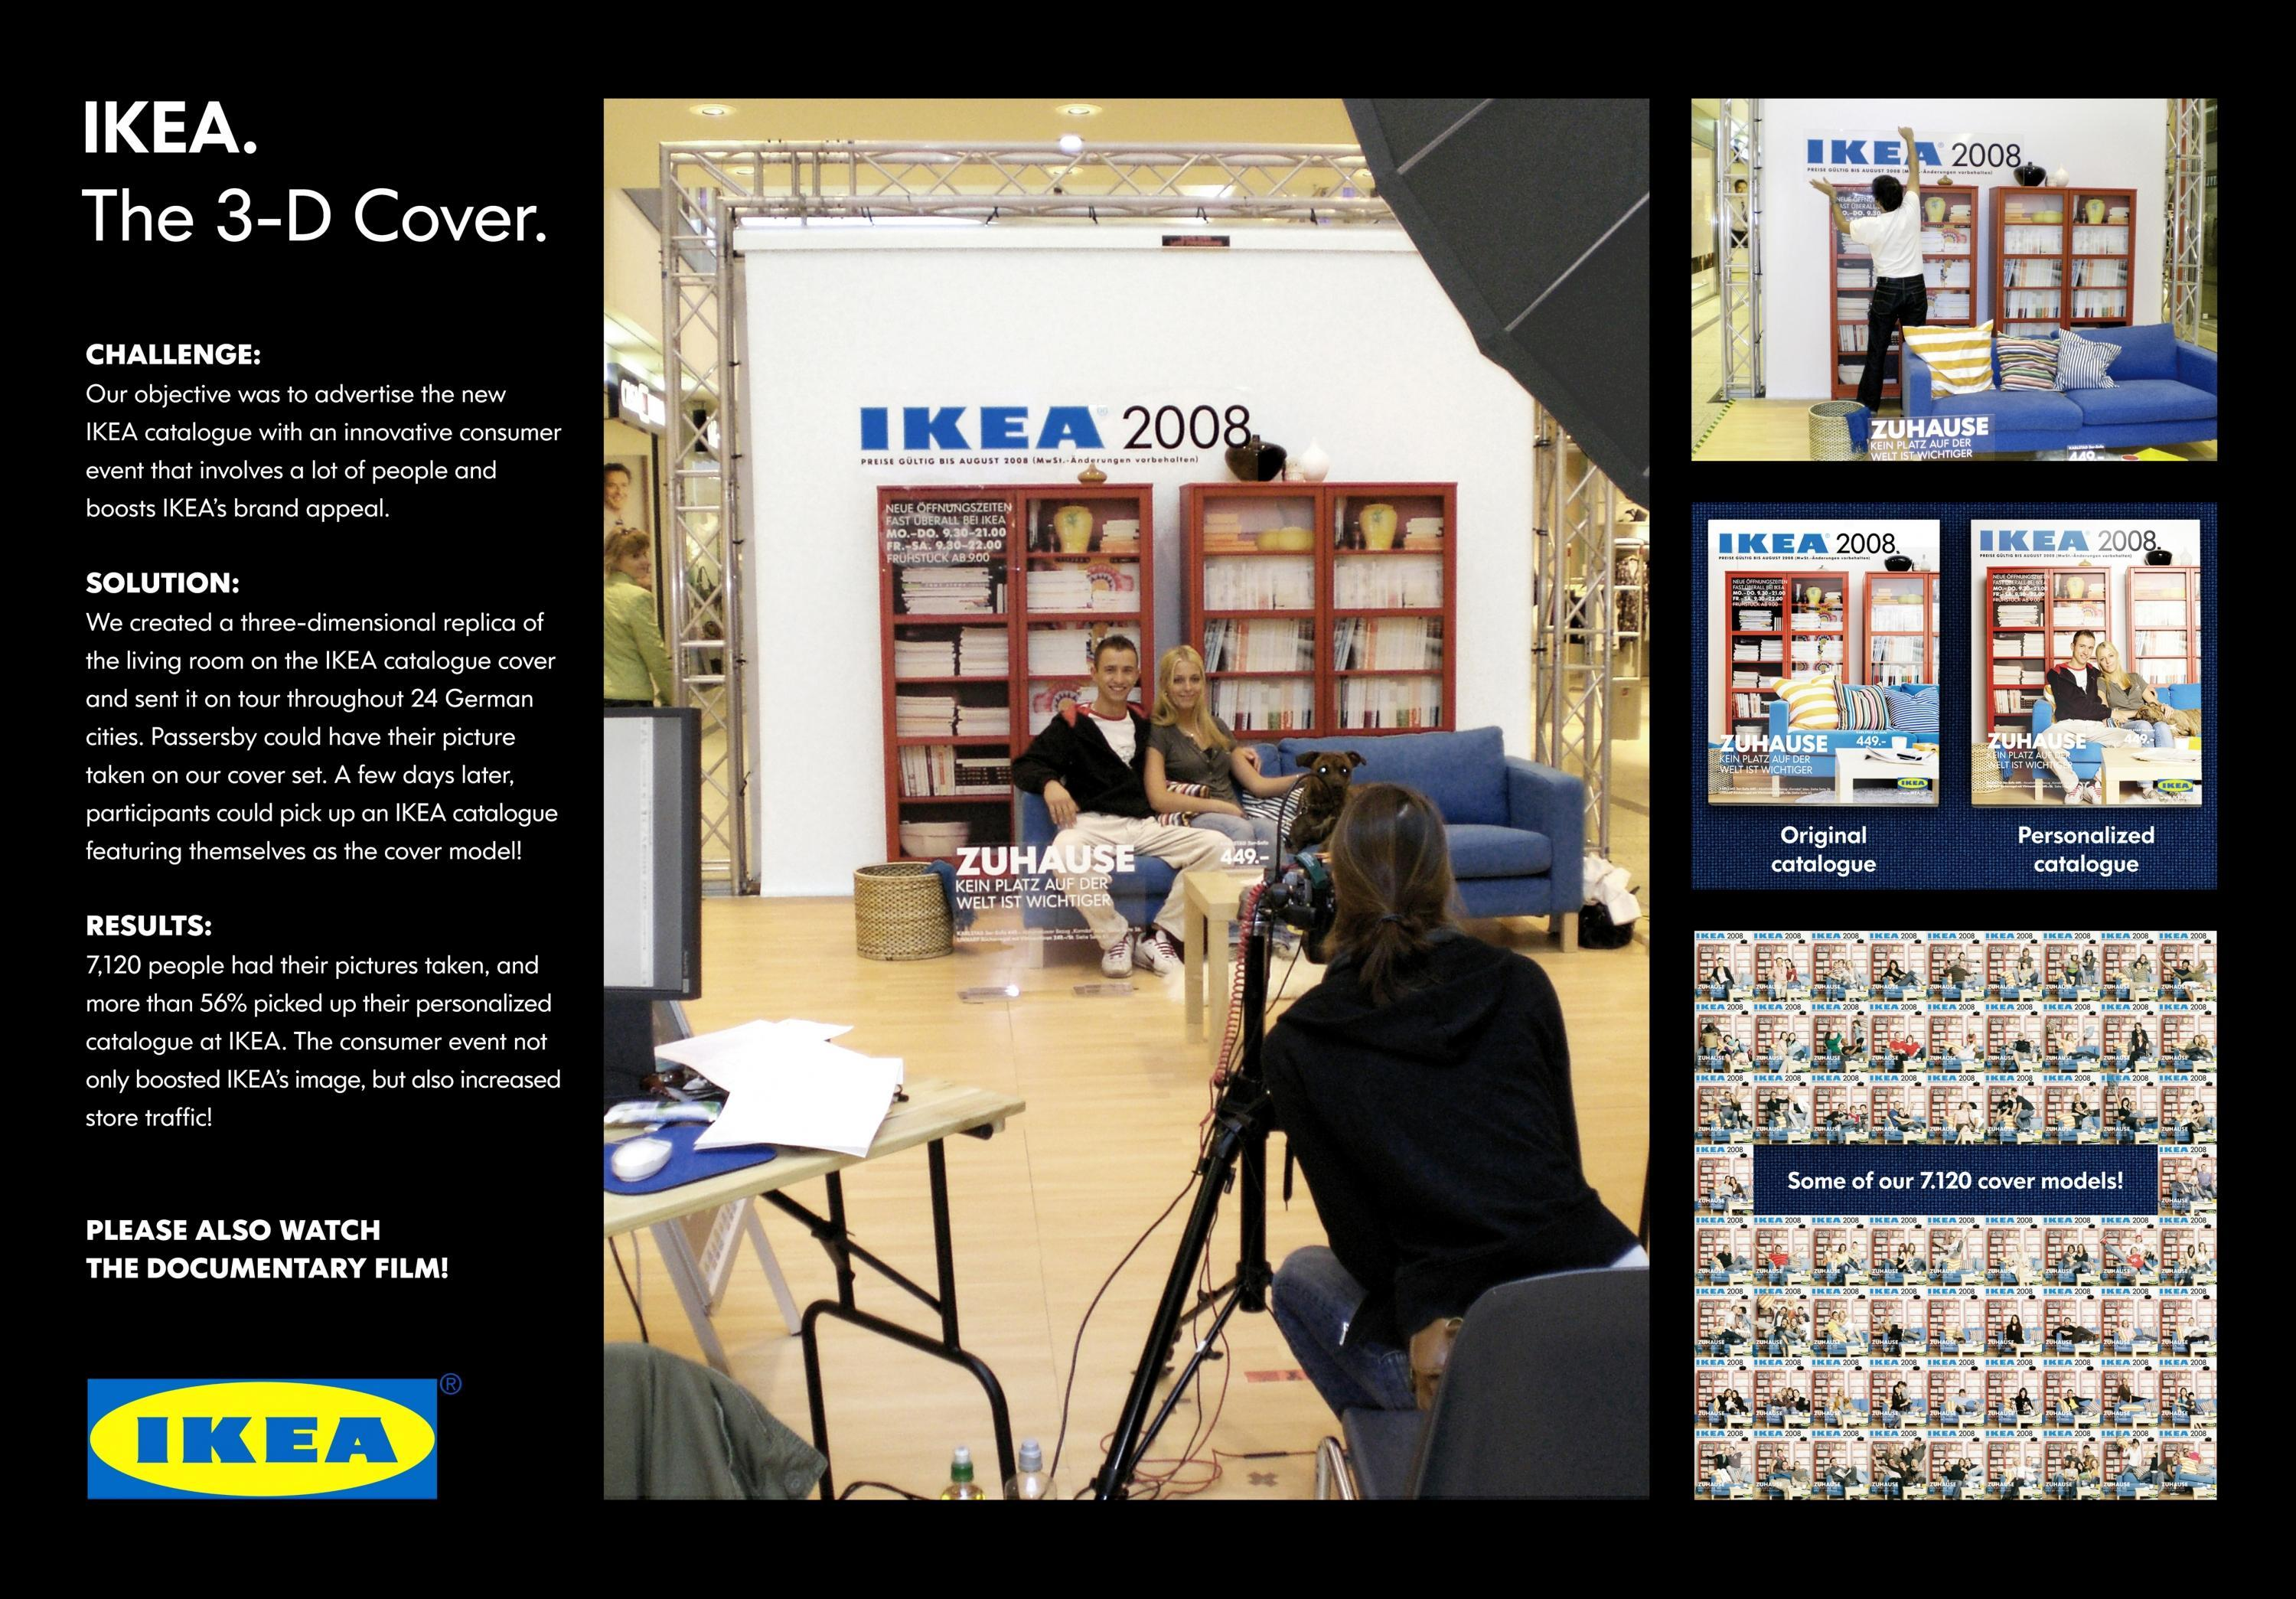 ikea germany ikea furniture store 3d cover the 3 d cover adeevee. Black Bedroom Furniture Sets. Home Design Ideas